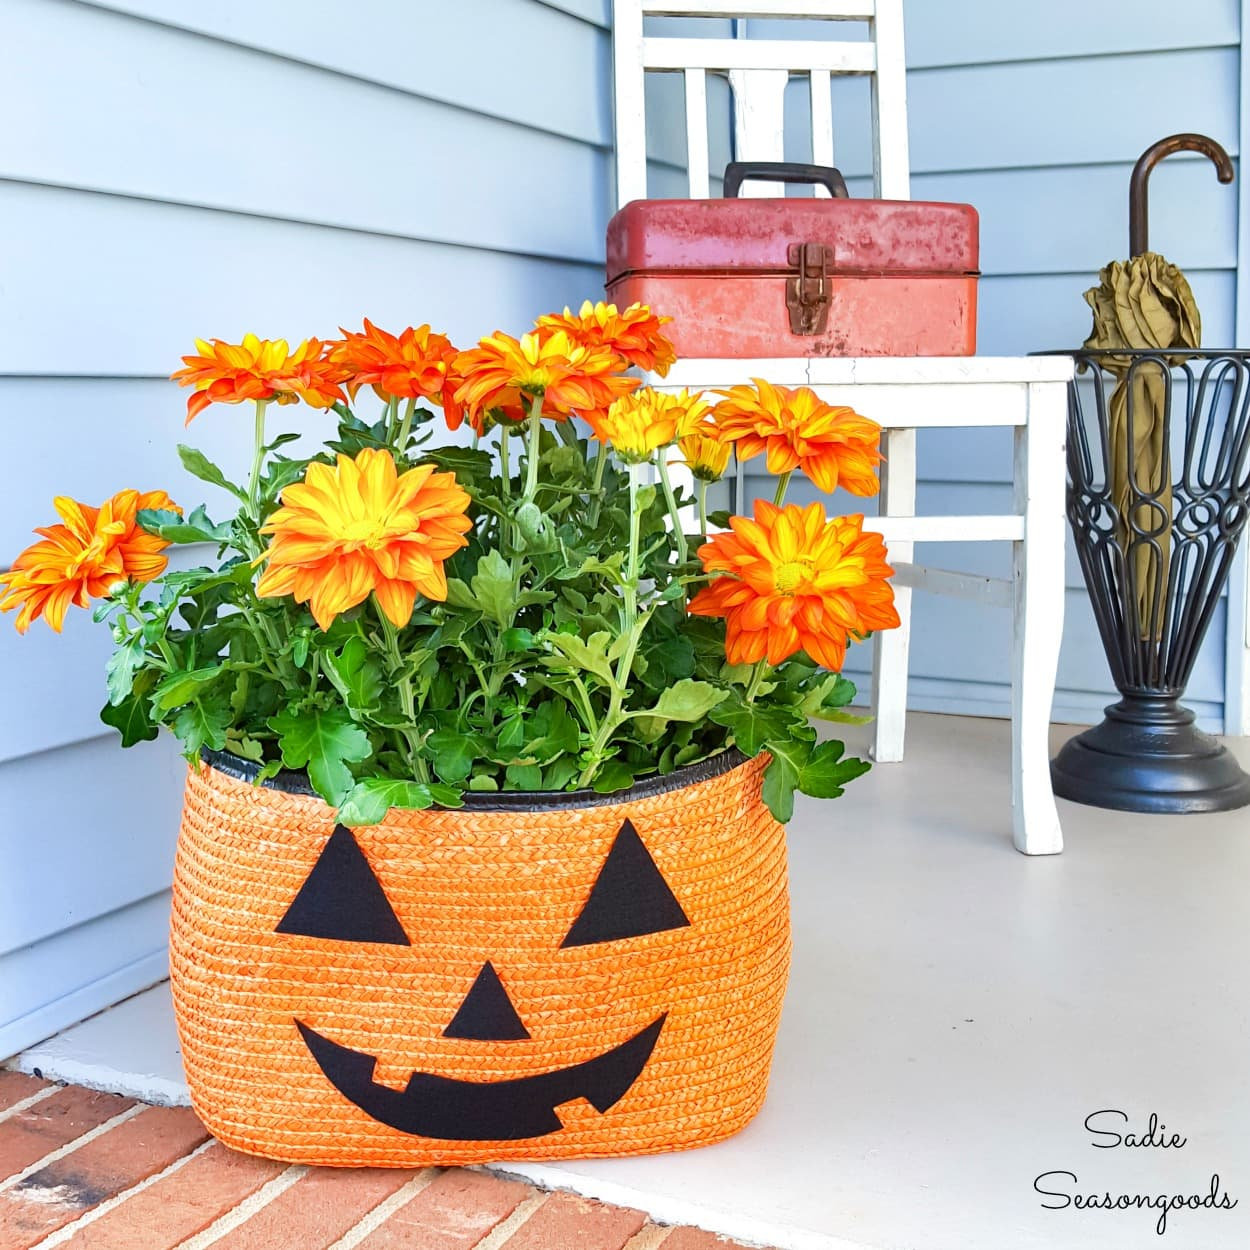 Upcycling a Straw Tote as a Halloween Planter